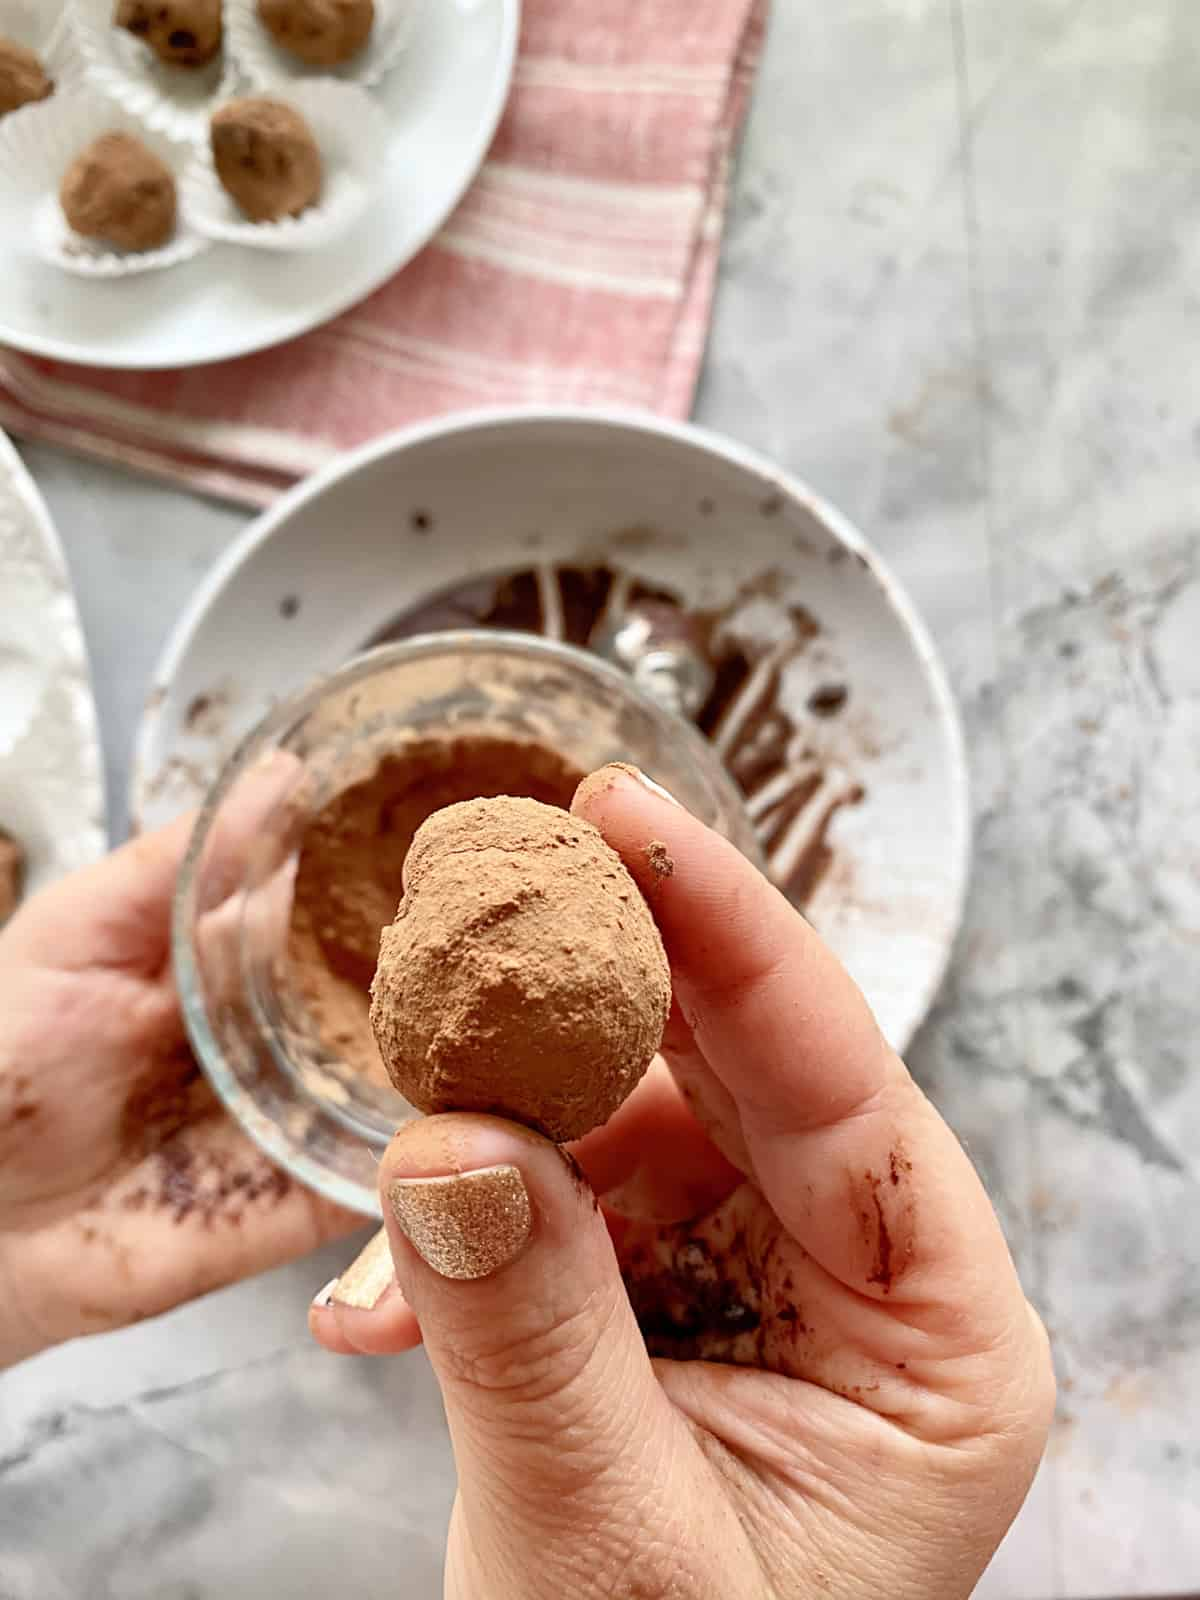 Female hand holding a cocoa powder dusted chocolate truffle.